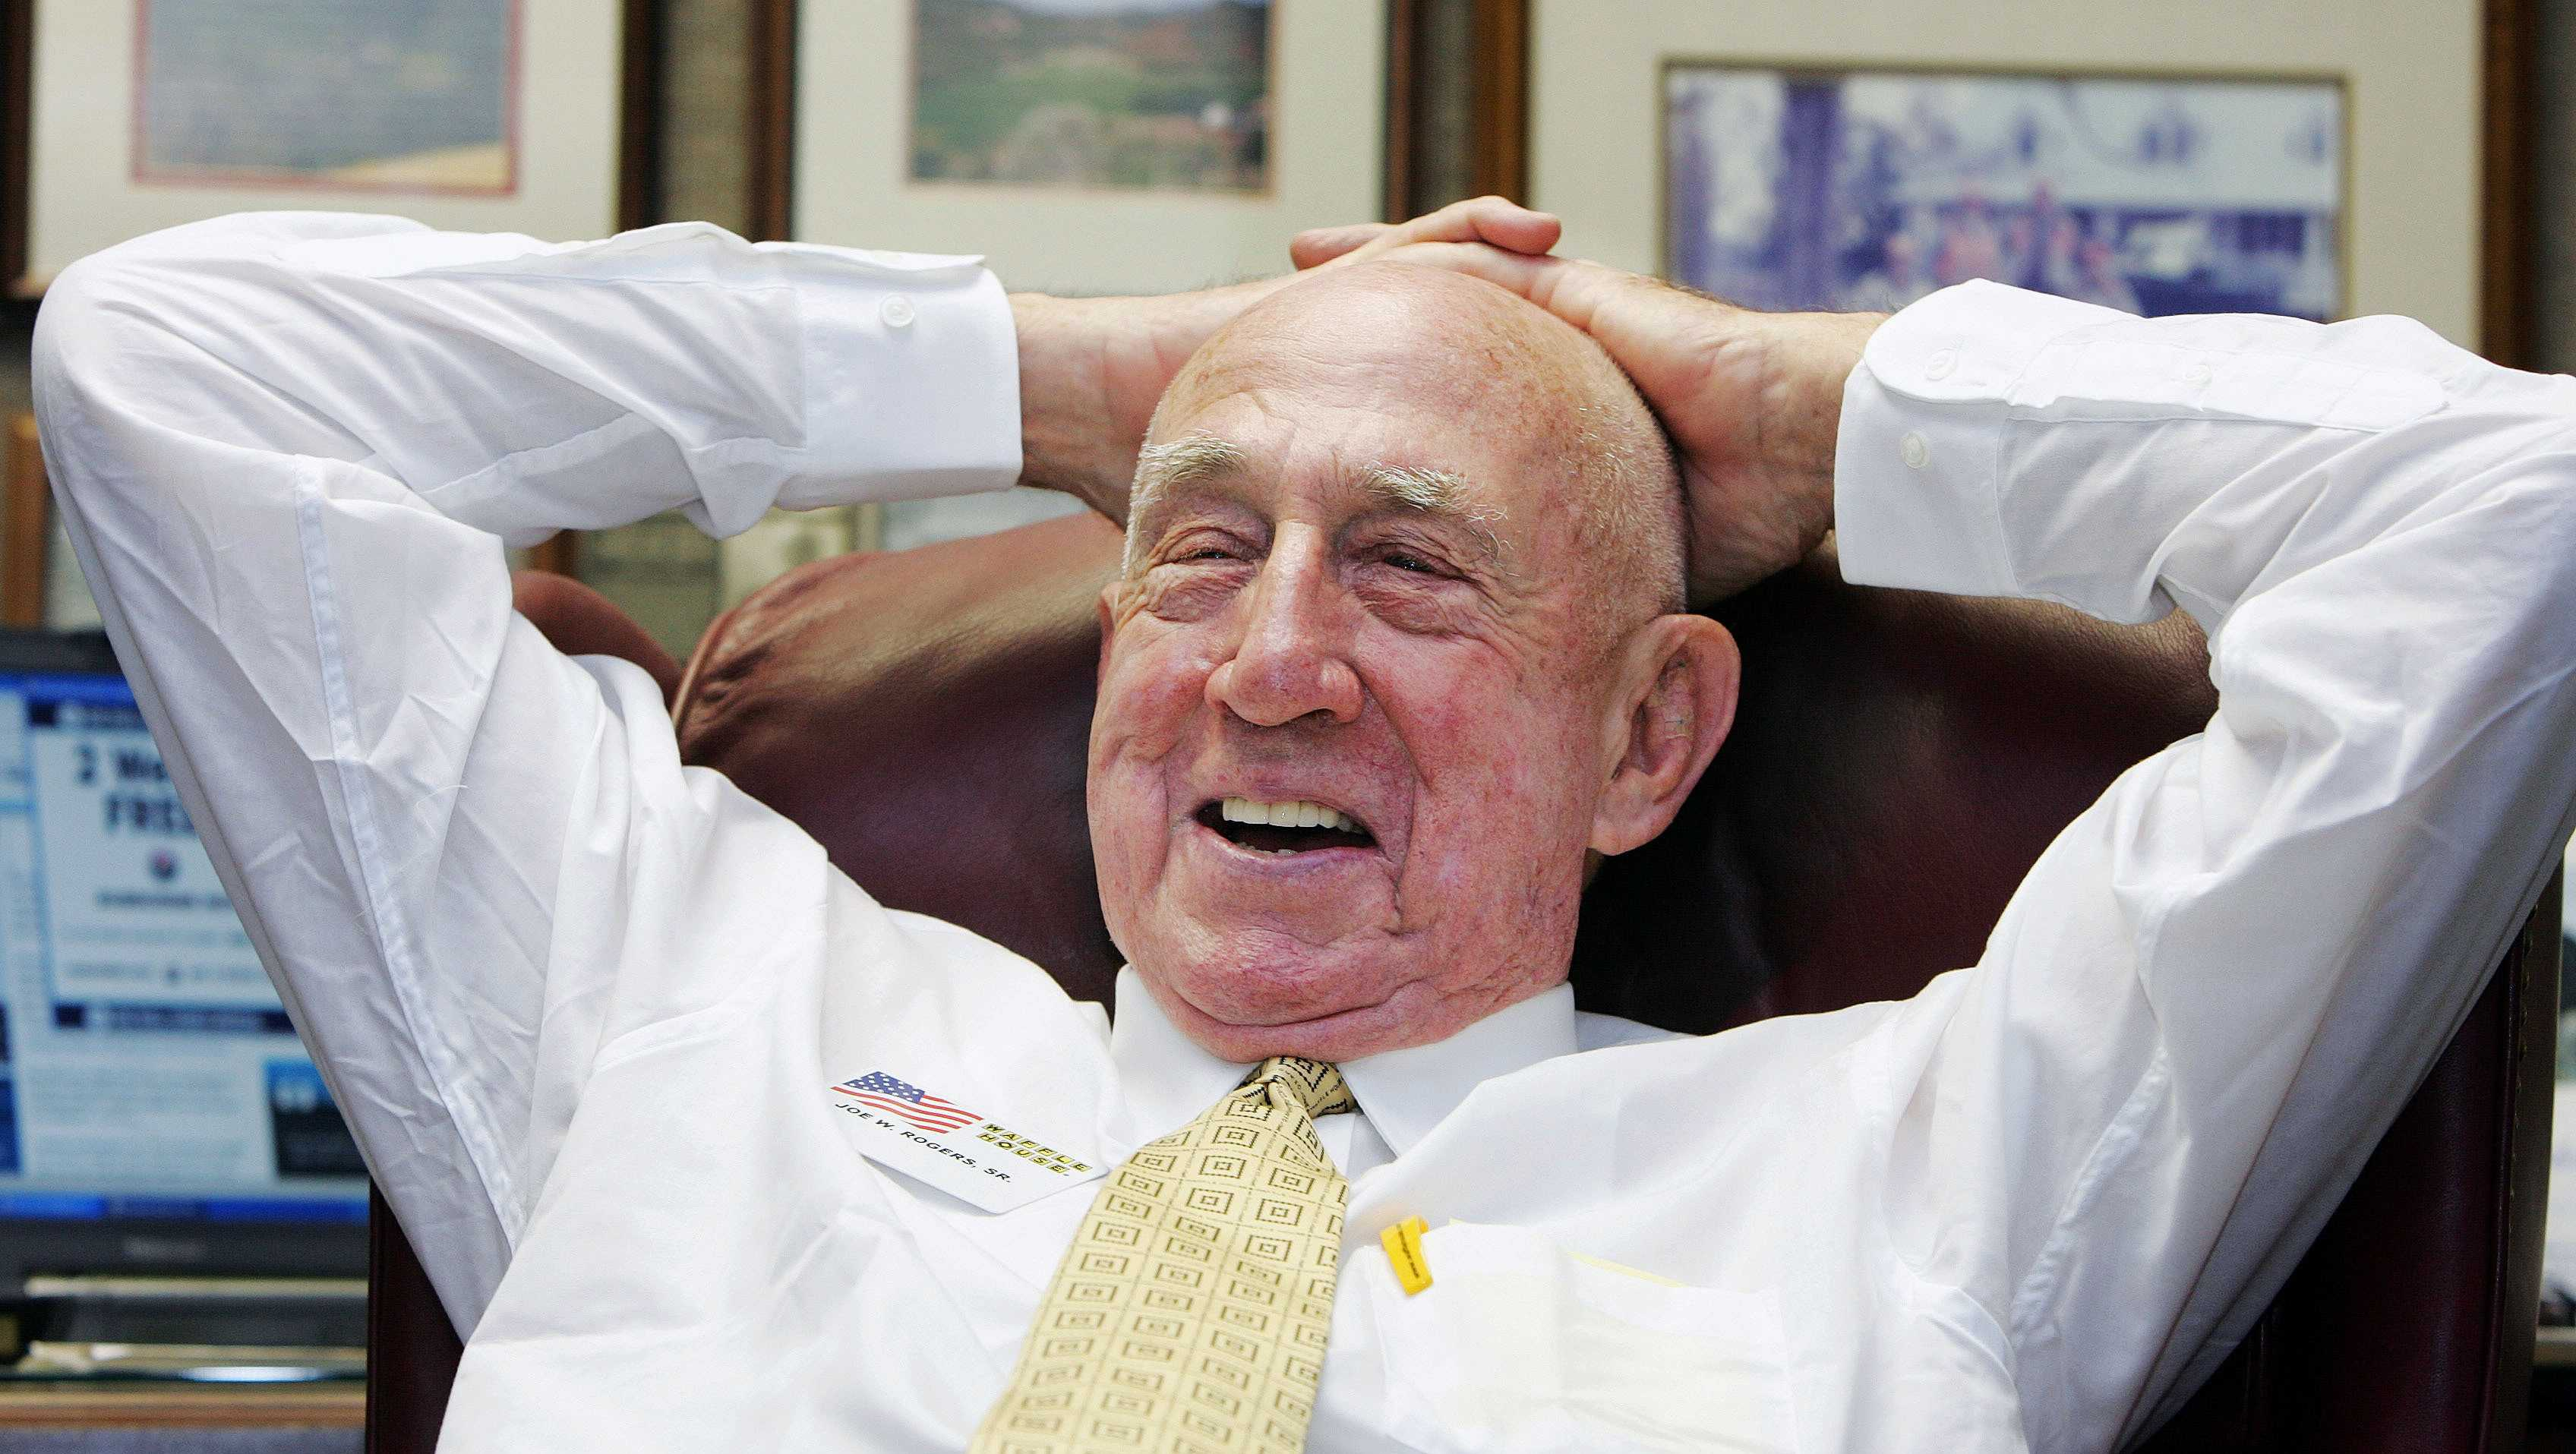 In this Tuesday, July 26, 2005, file photo, Waffle House co-founder Joseph Wilson Rogers Sr., sits in his office in the Waffle House headquarters in Norcross, Ga. Georgia-based Waffle House said Rogers died Friday, March 3, 2017. He was 97.